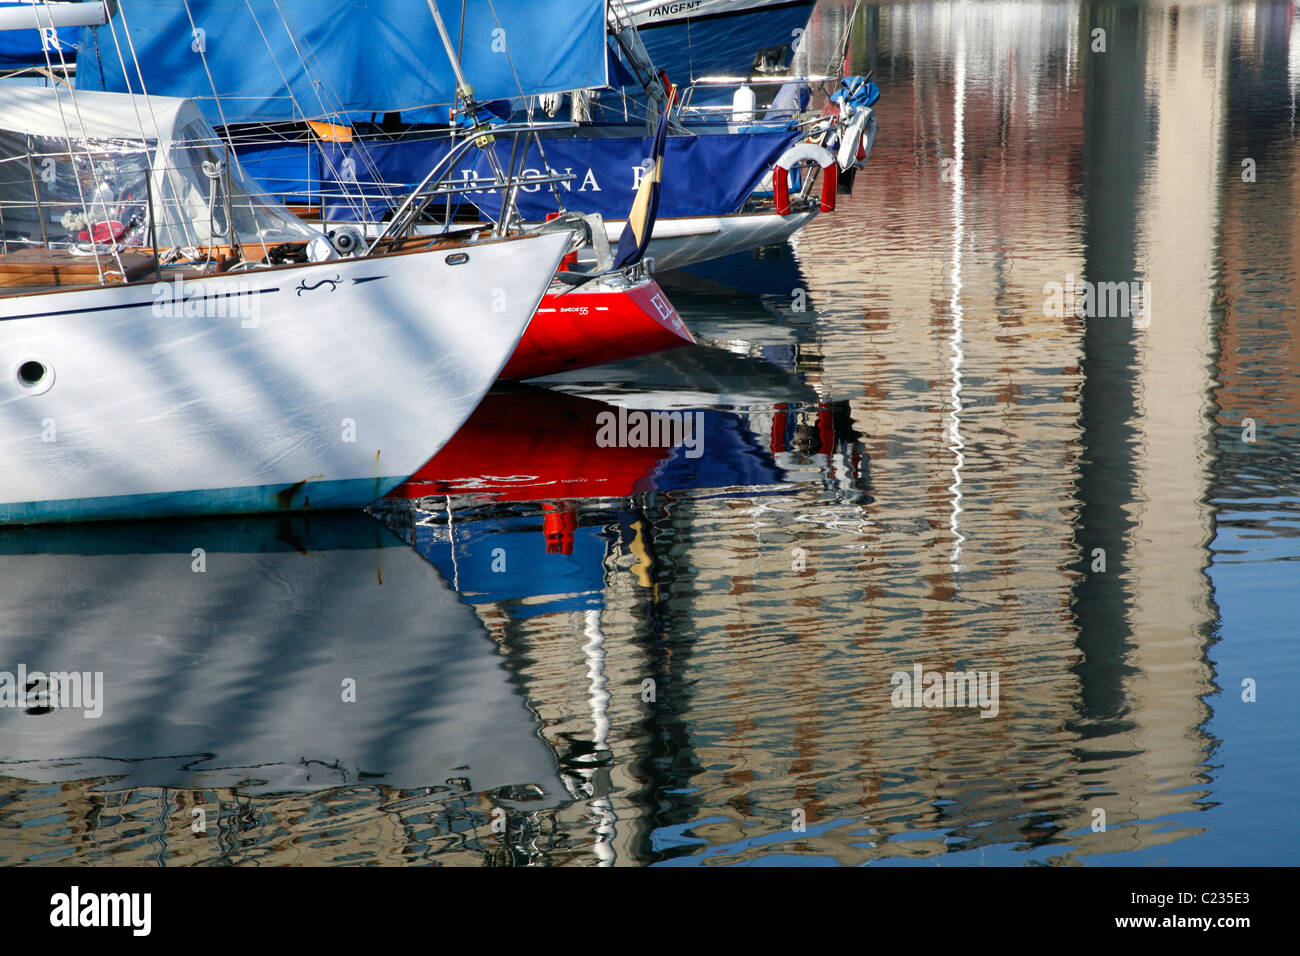 Yachts moored in St Katharine's Dock, Wapping, London, UK Stock Photo